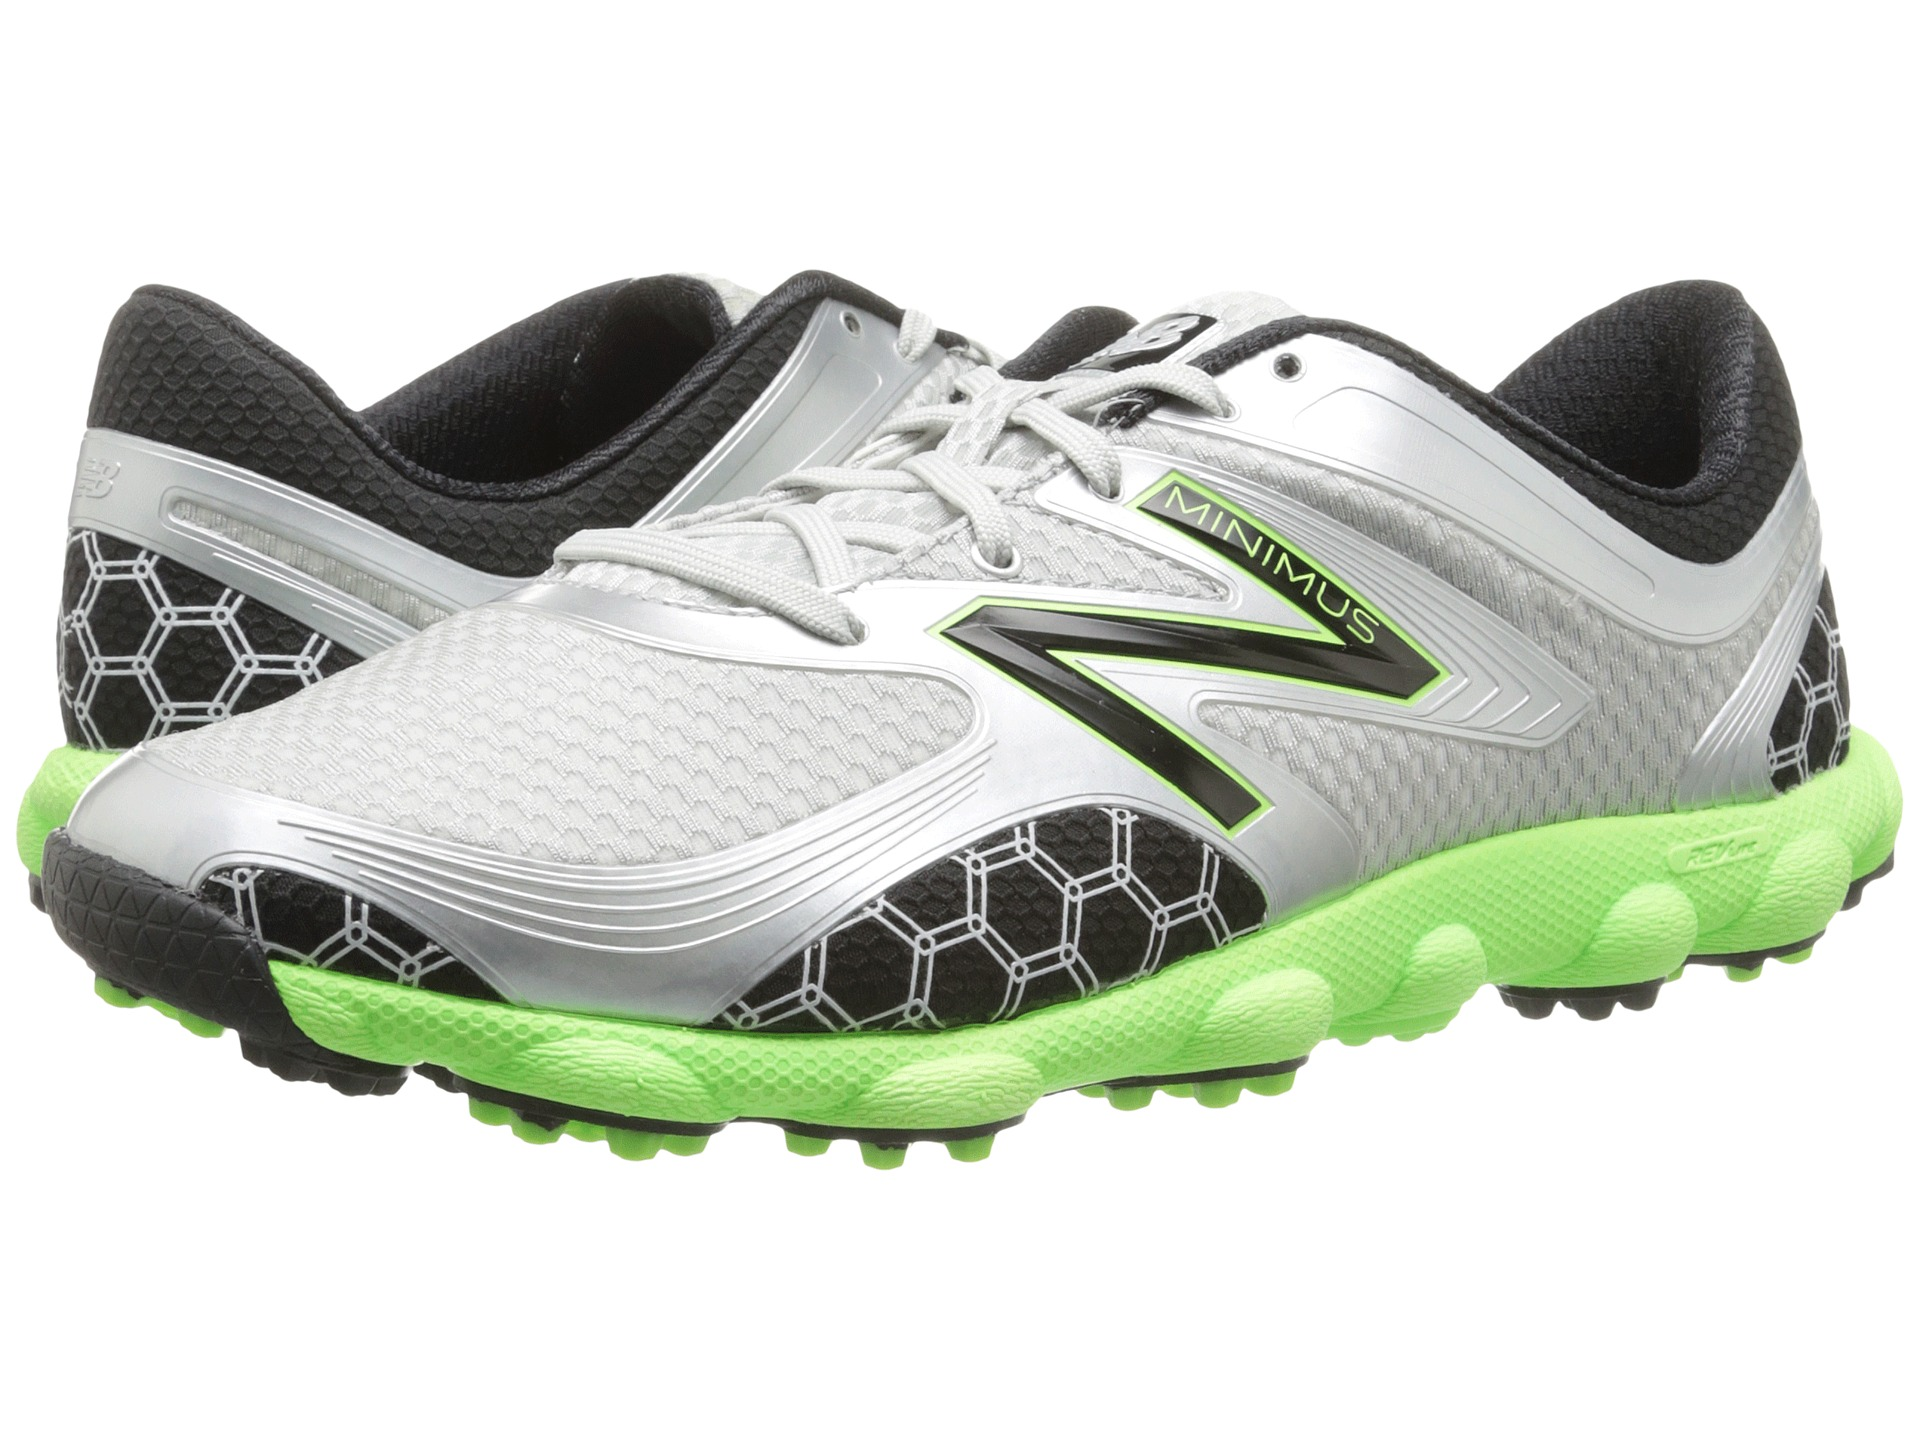 New Balance Minimus Golf Shoes Fit